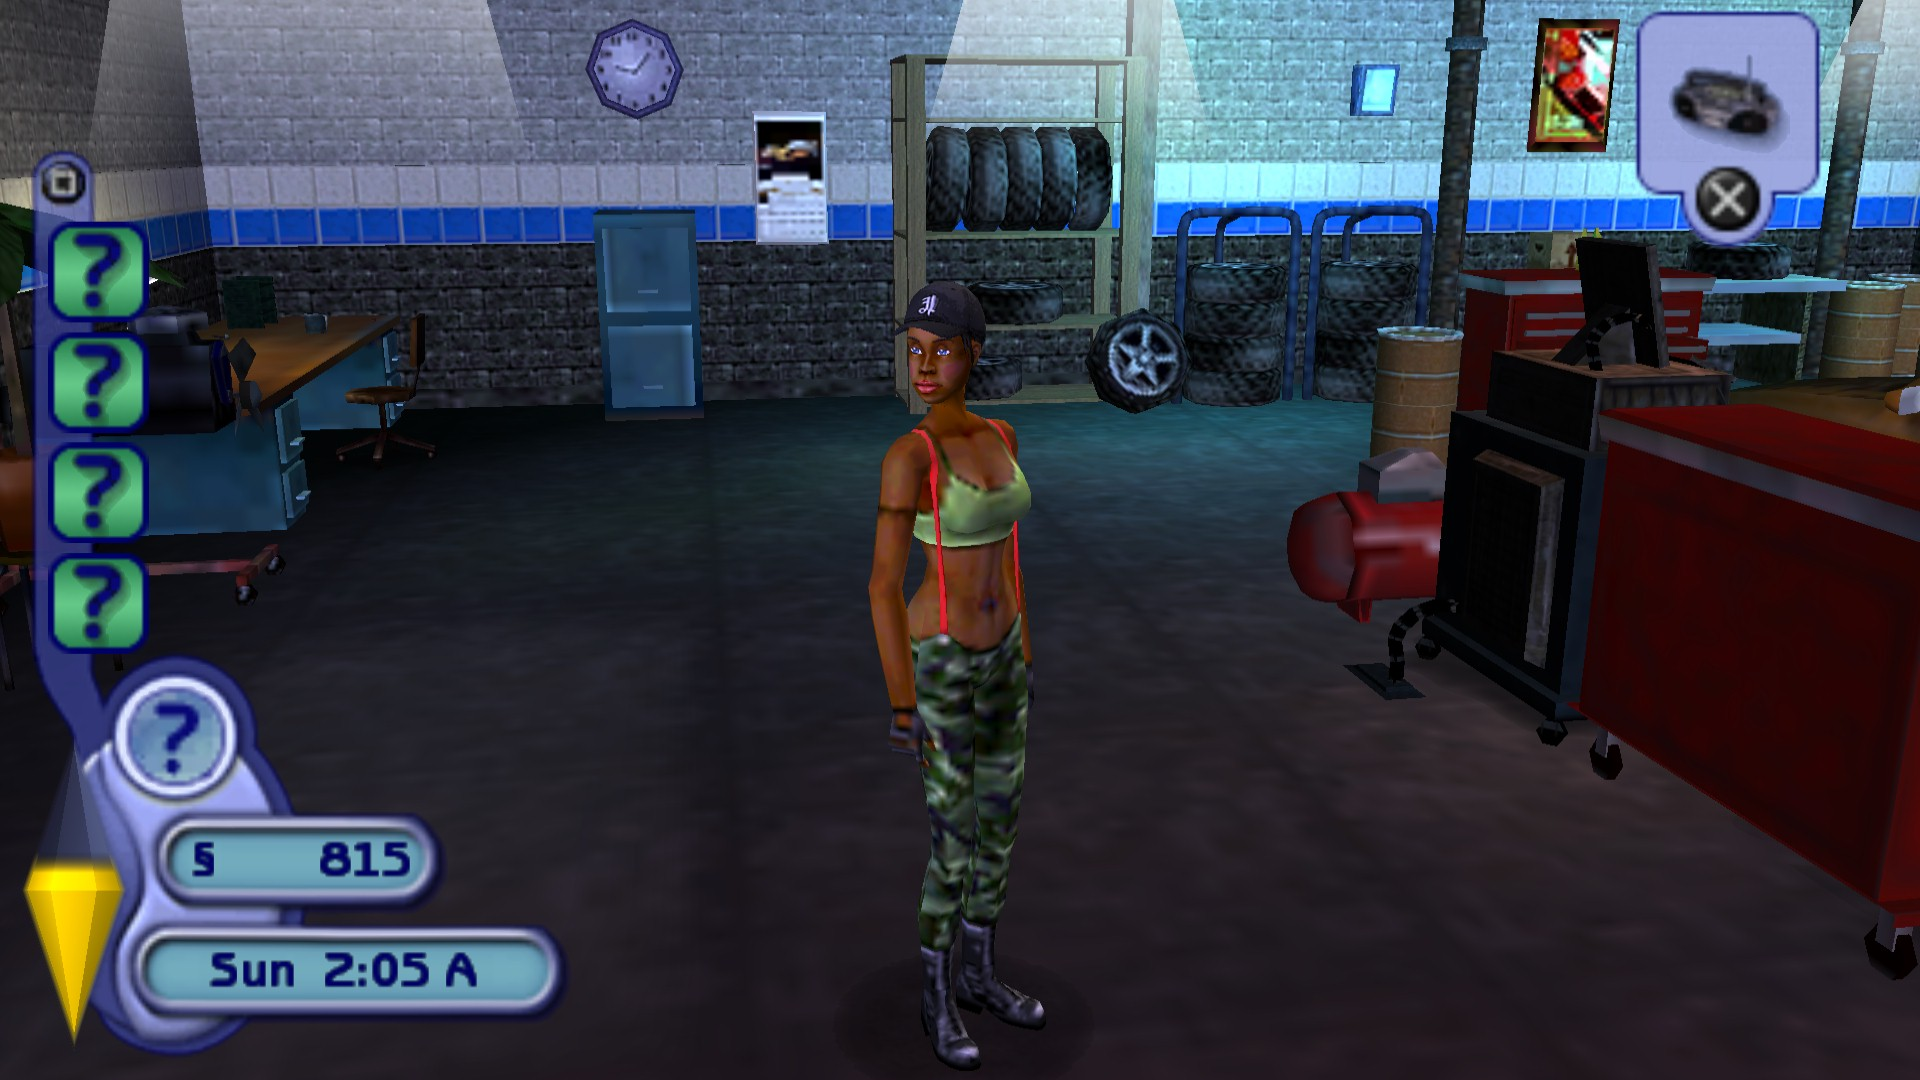 Download Game Gta N64